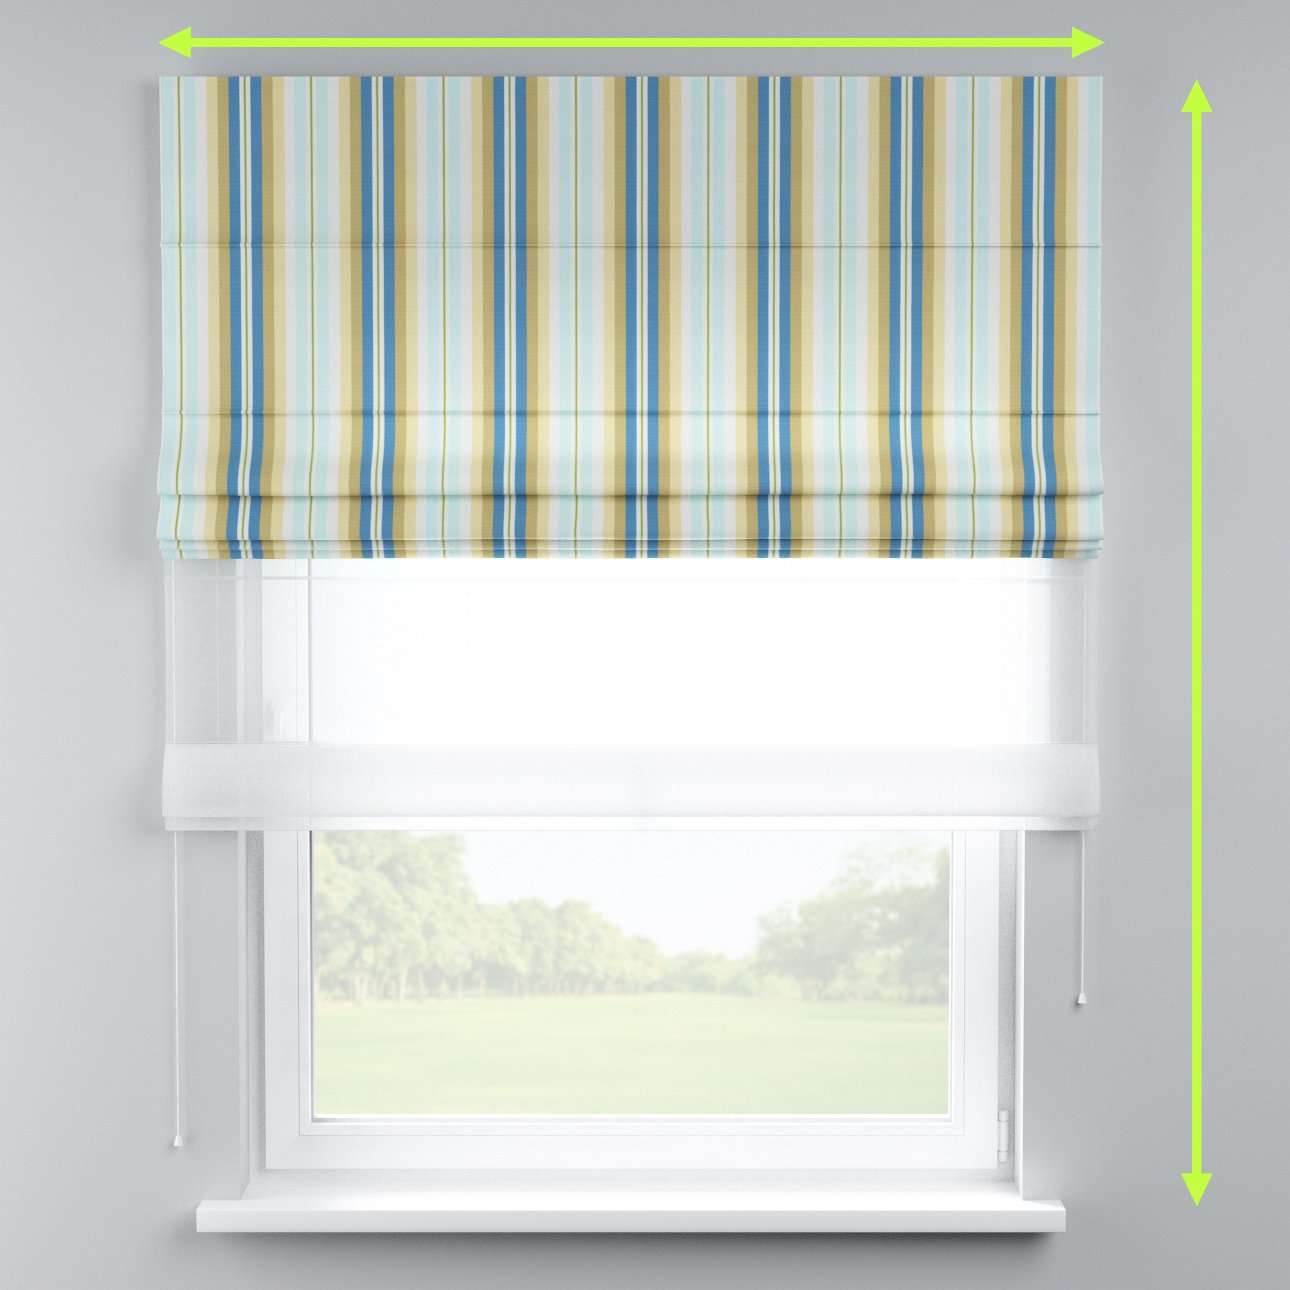 Voile and fabric roman blind (DUO II) in collection Mirella, fabric: 141-17